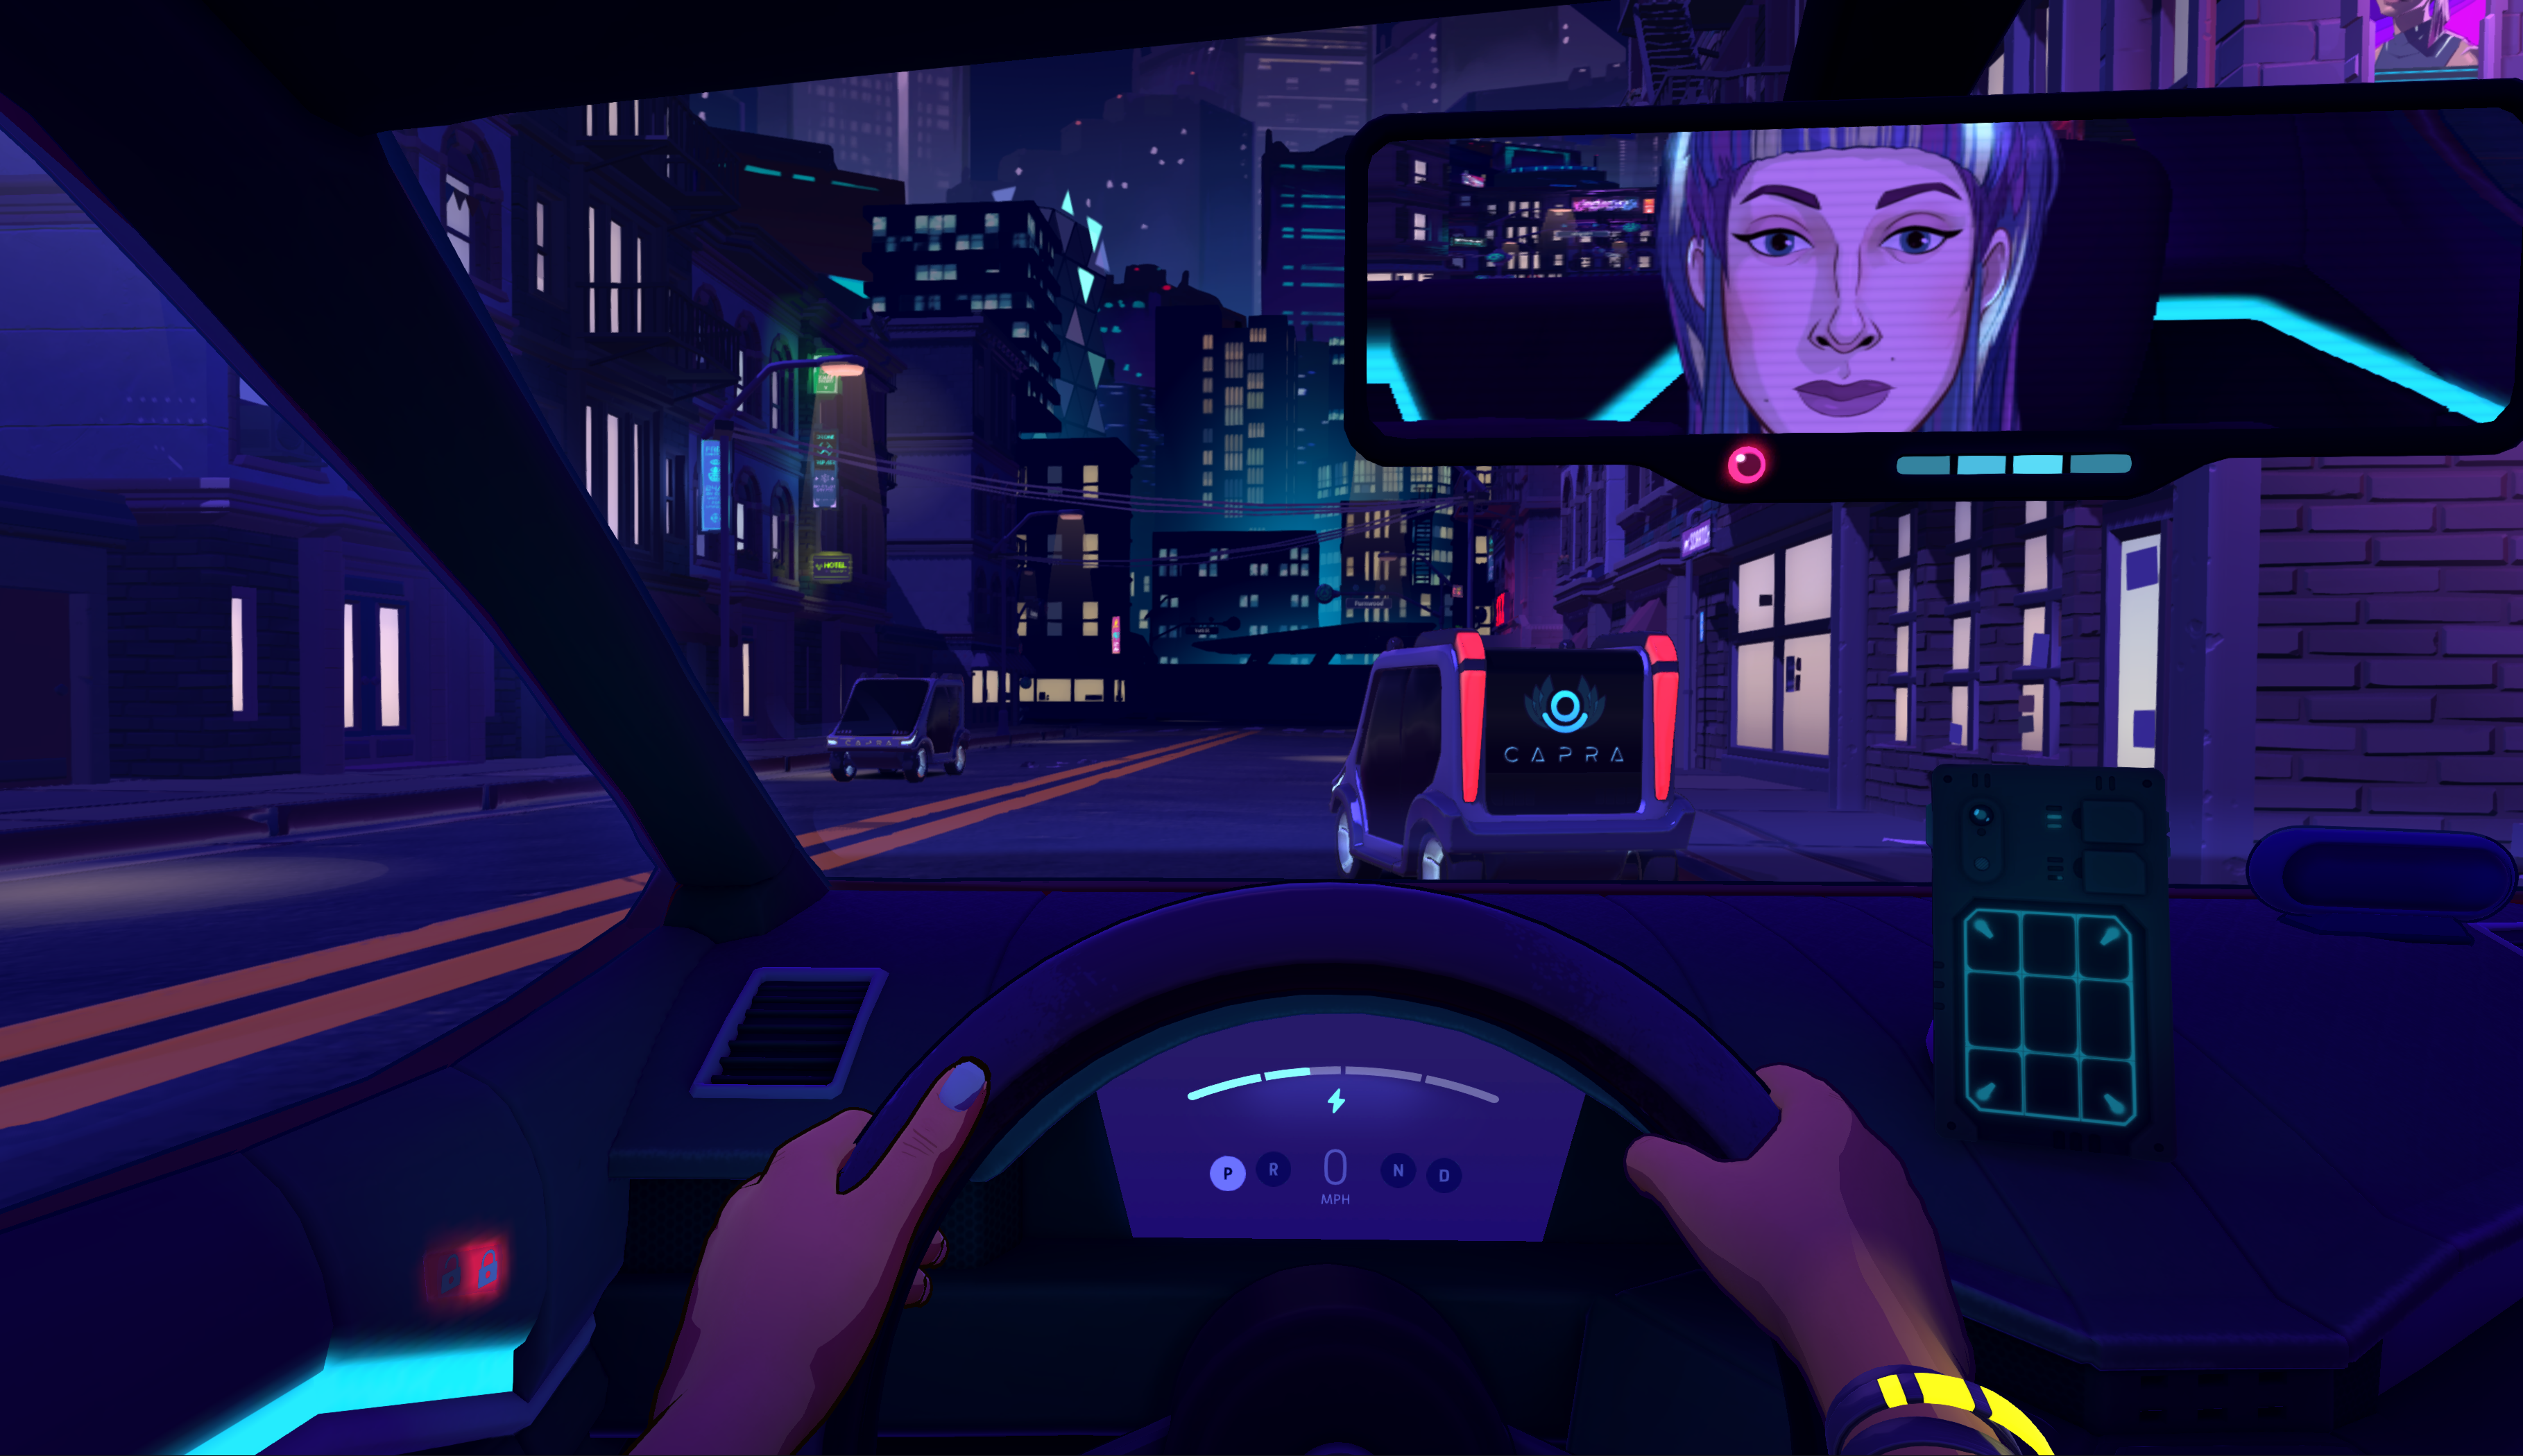 The protagonist drives a car while a friend is visible in the rearview mirror.